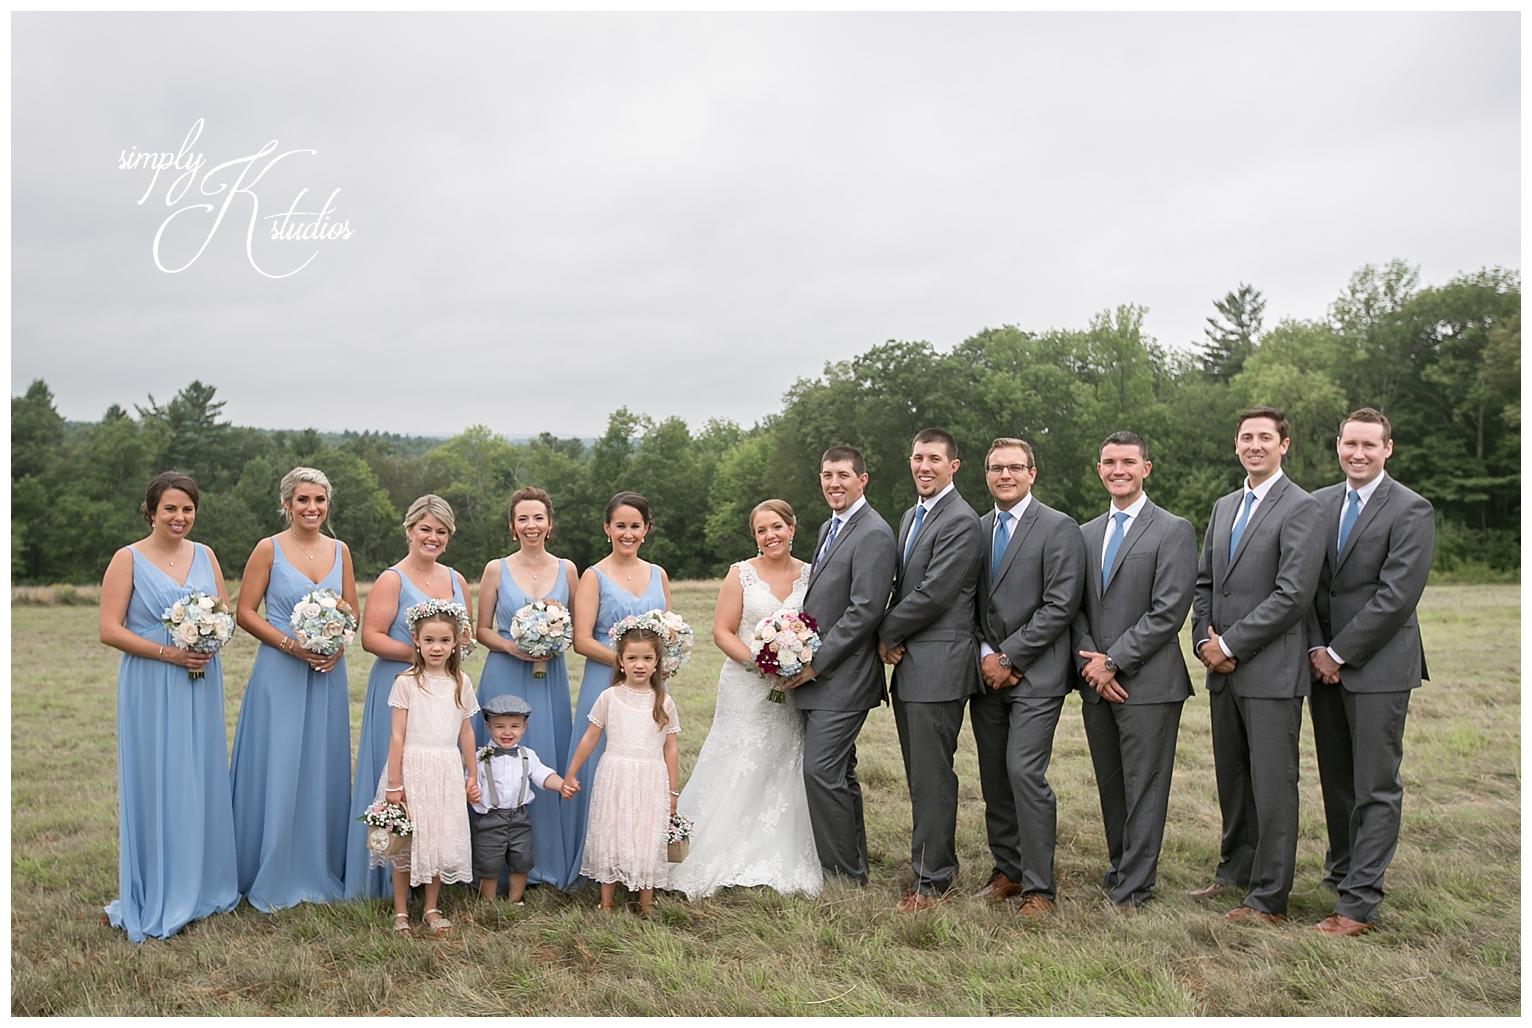 Bridal Party Photos at Harrington Farm.jpg